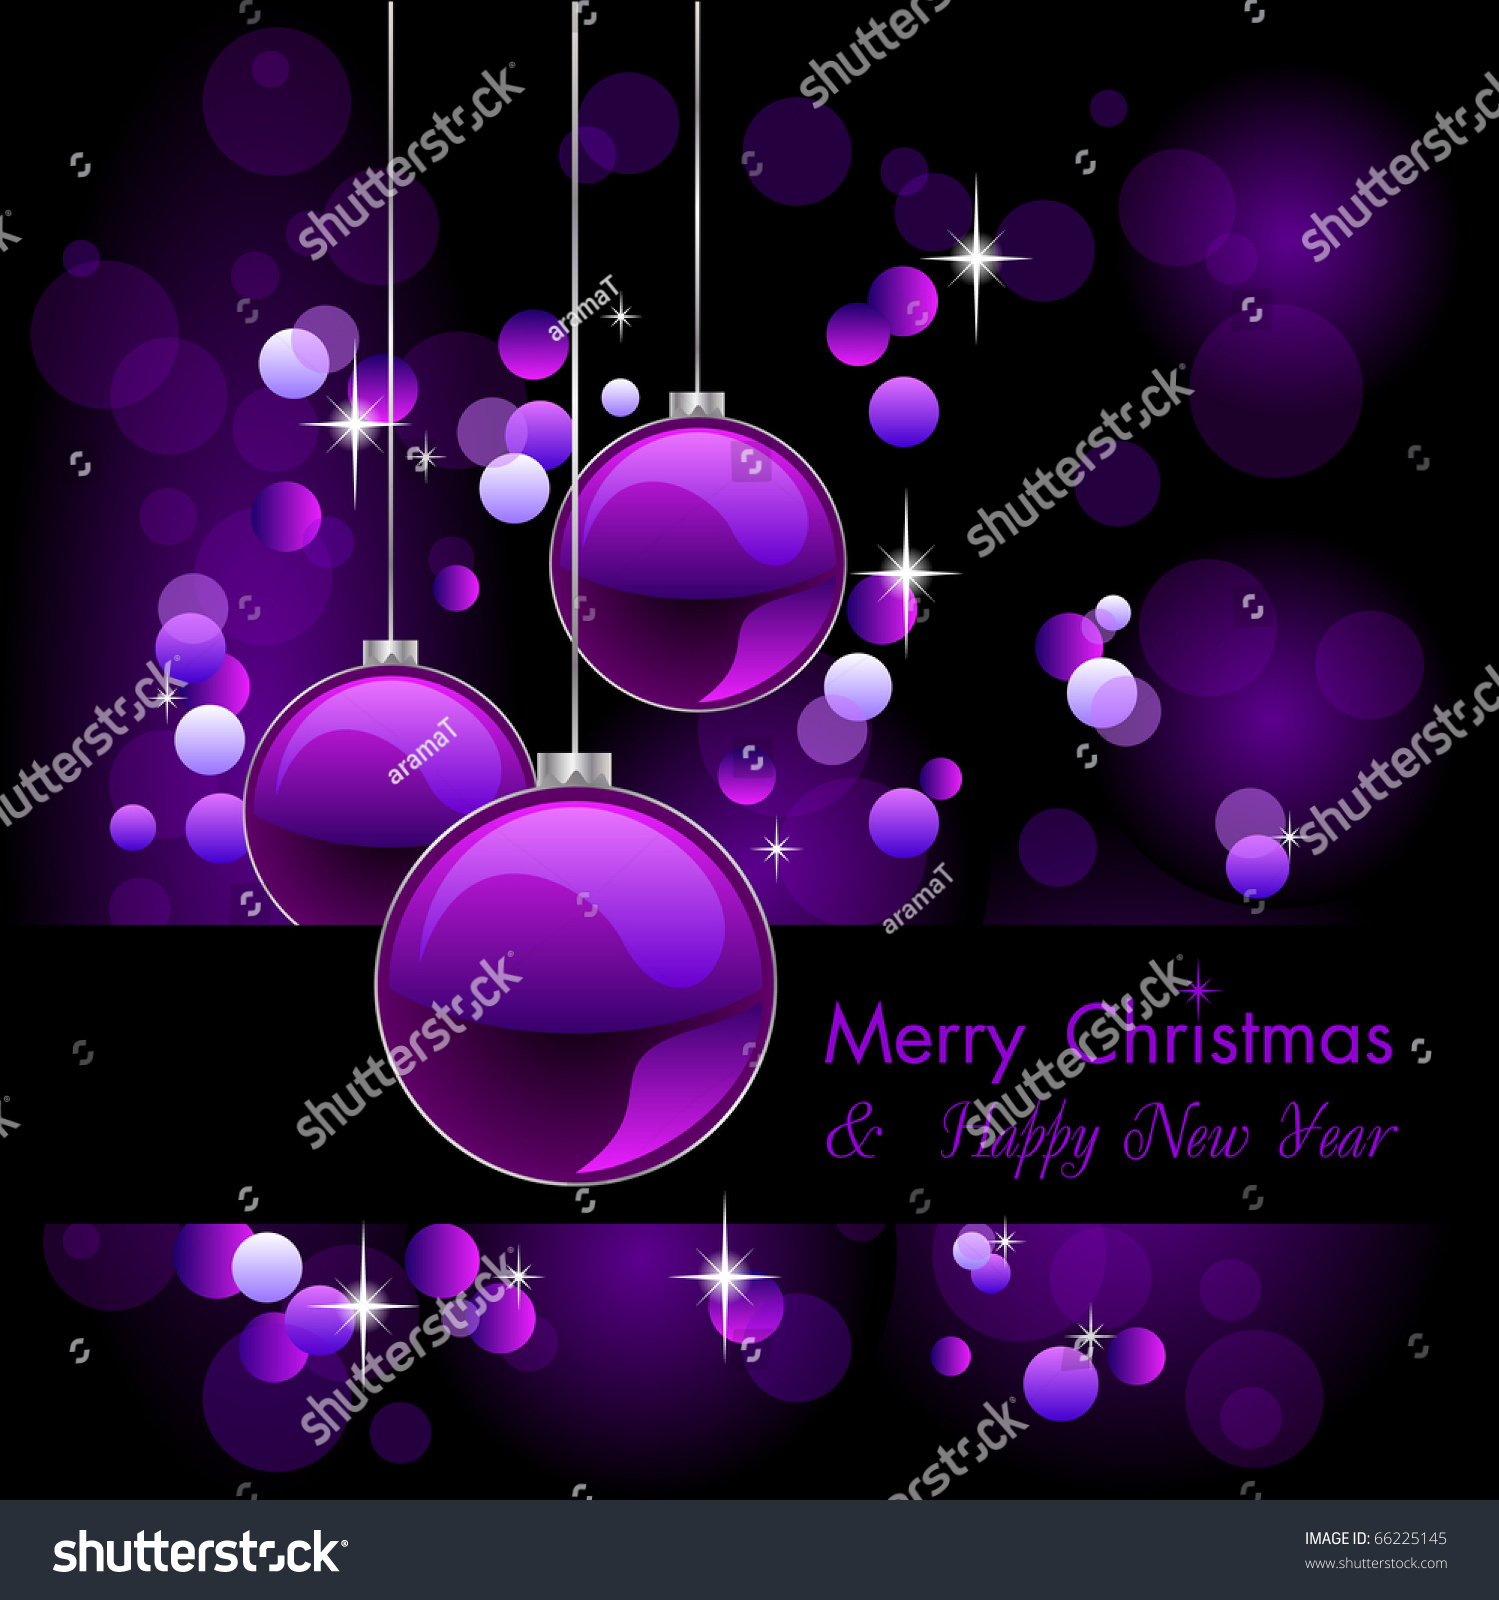 merry christmas elegant purple background baubles stock